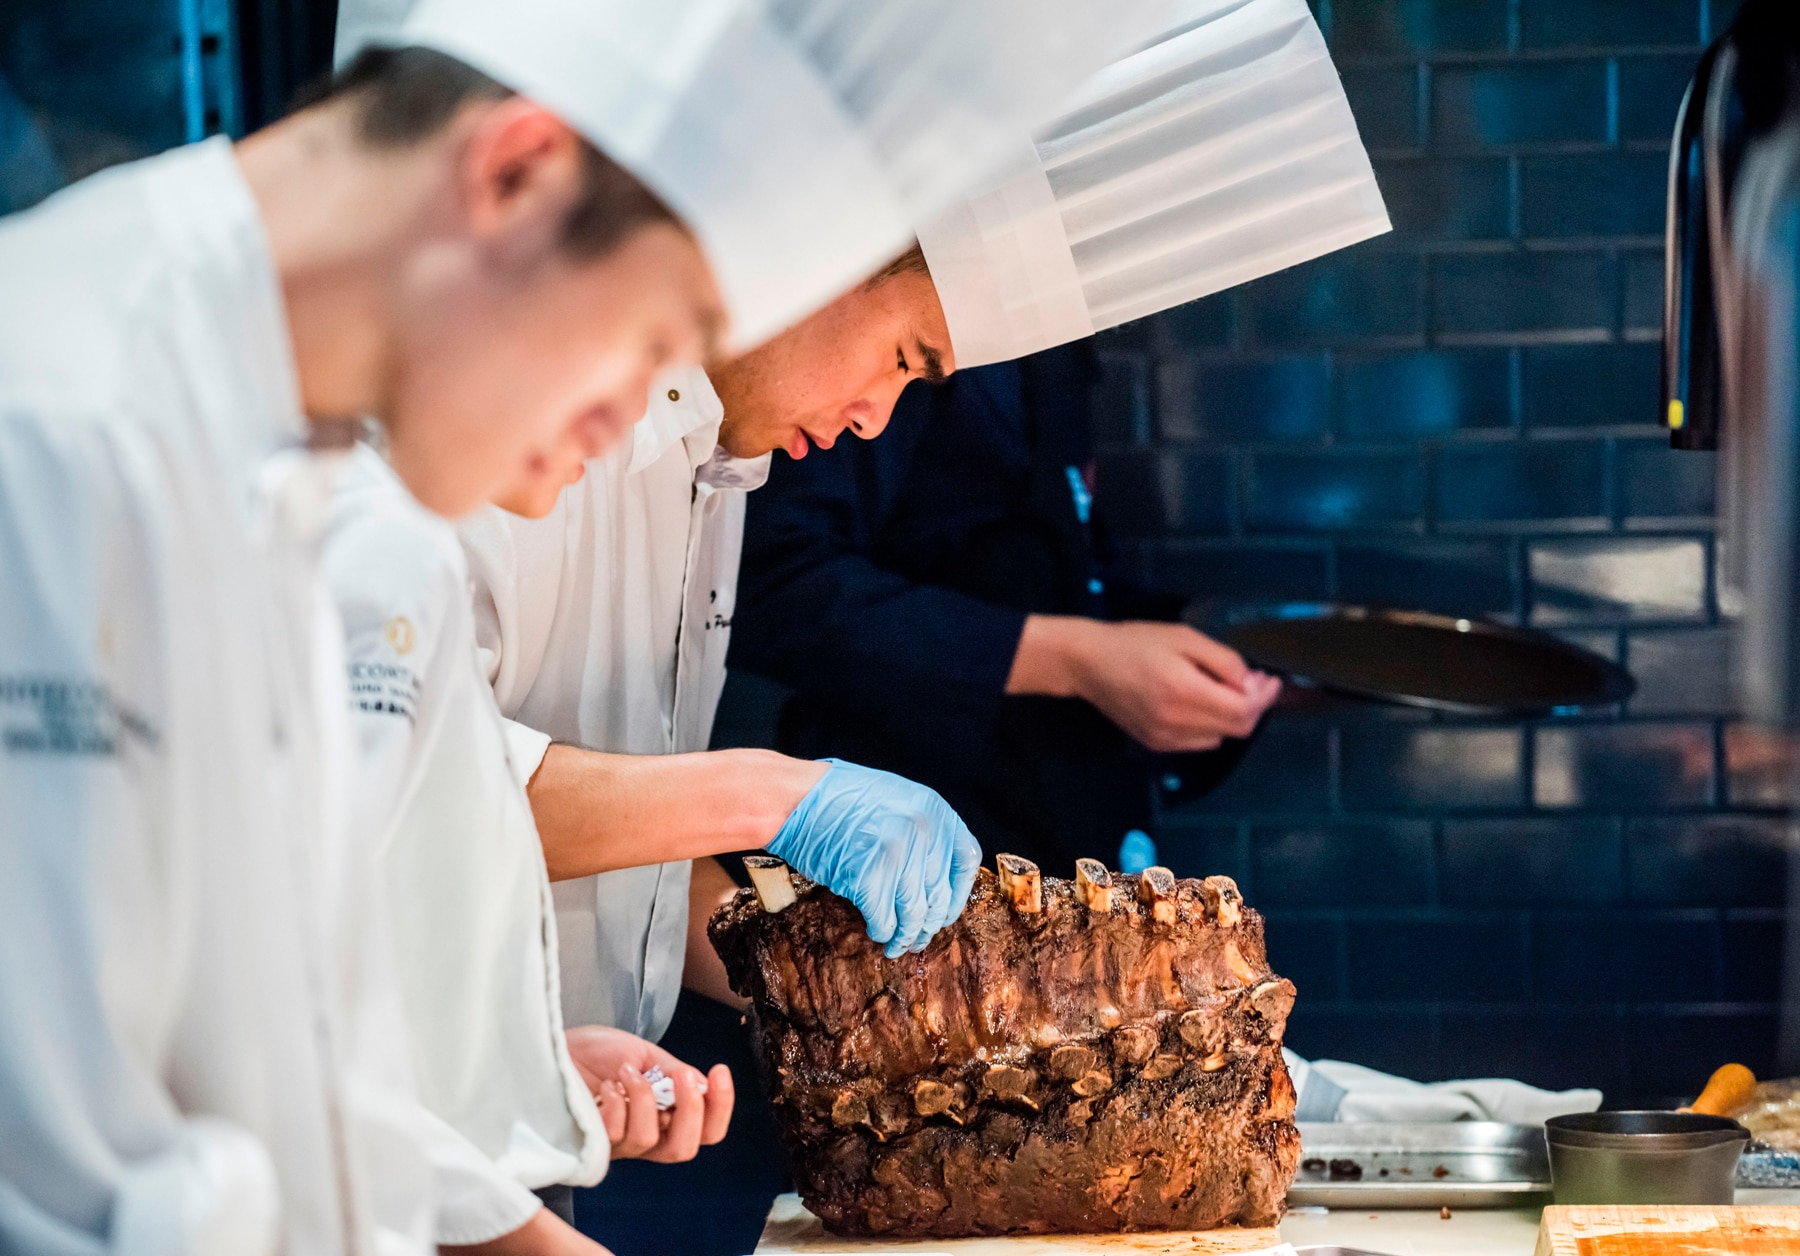 Chinese chefs preparing meat (© Getty Images)